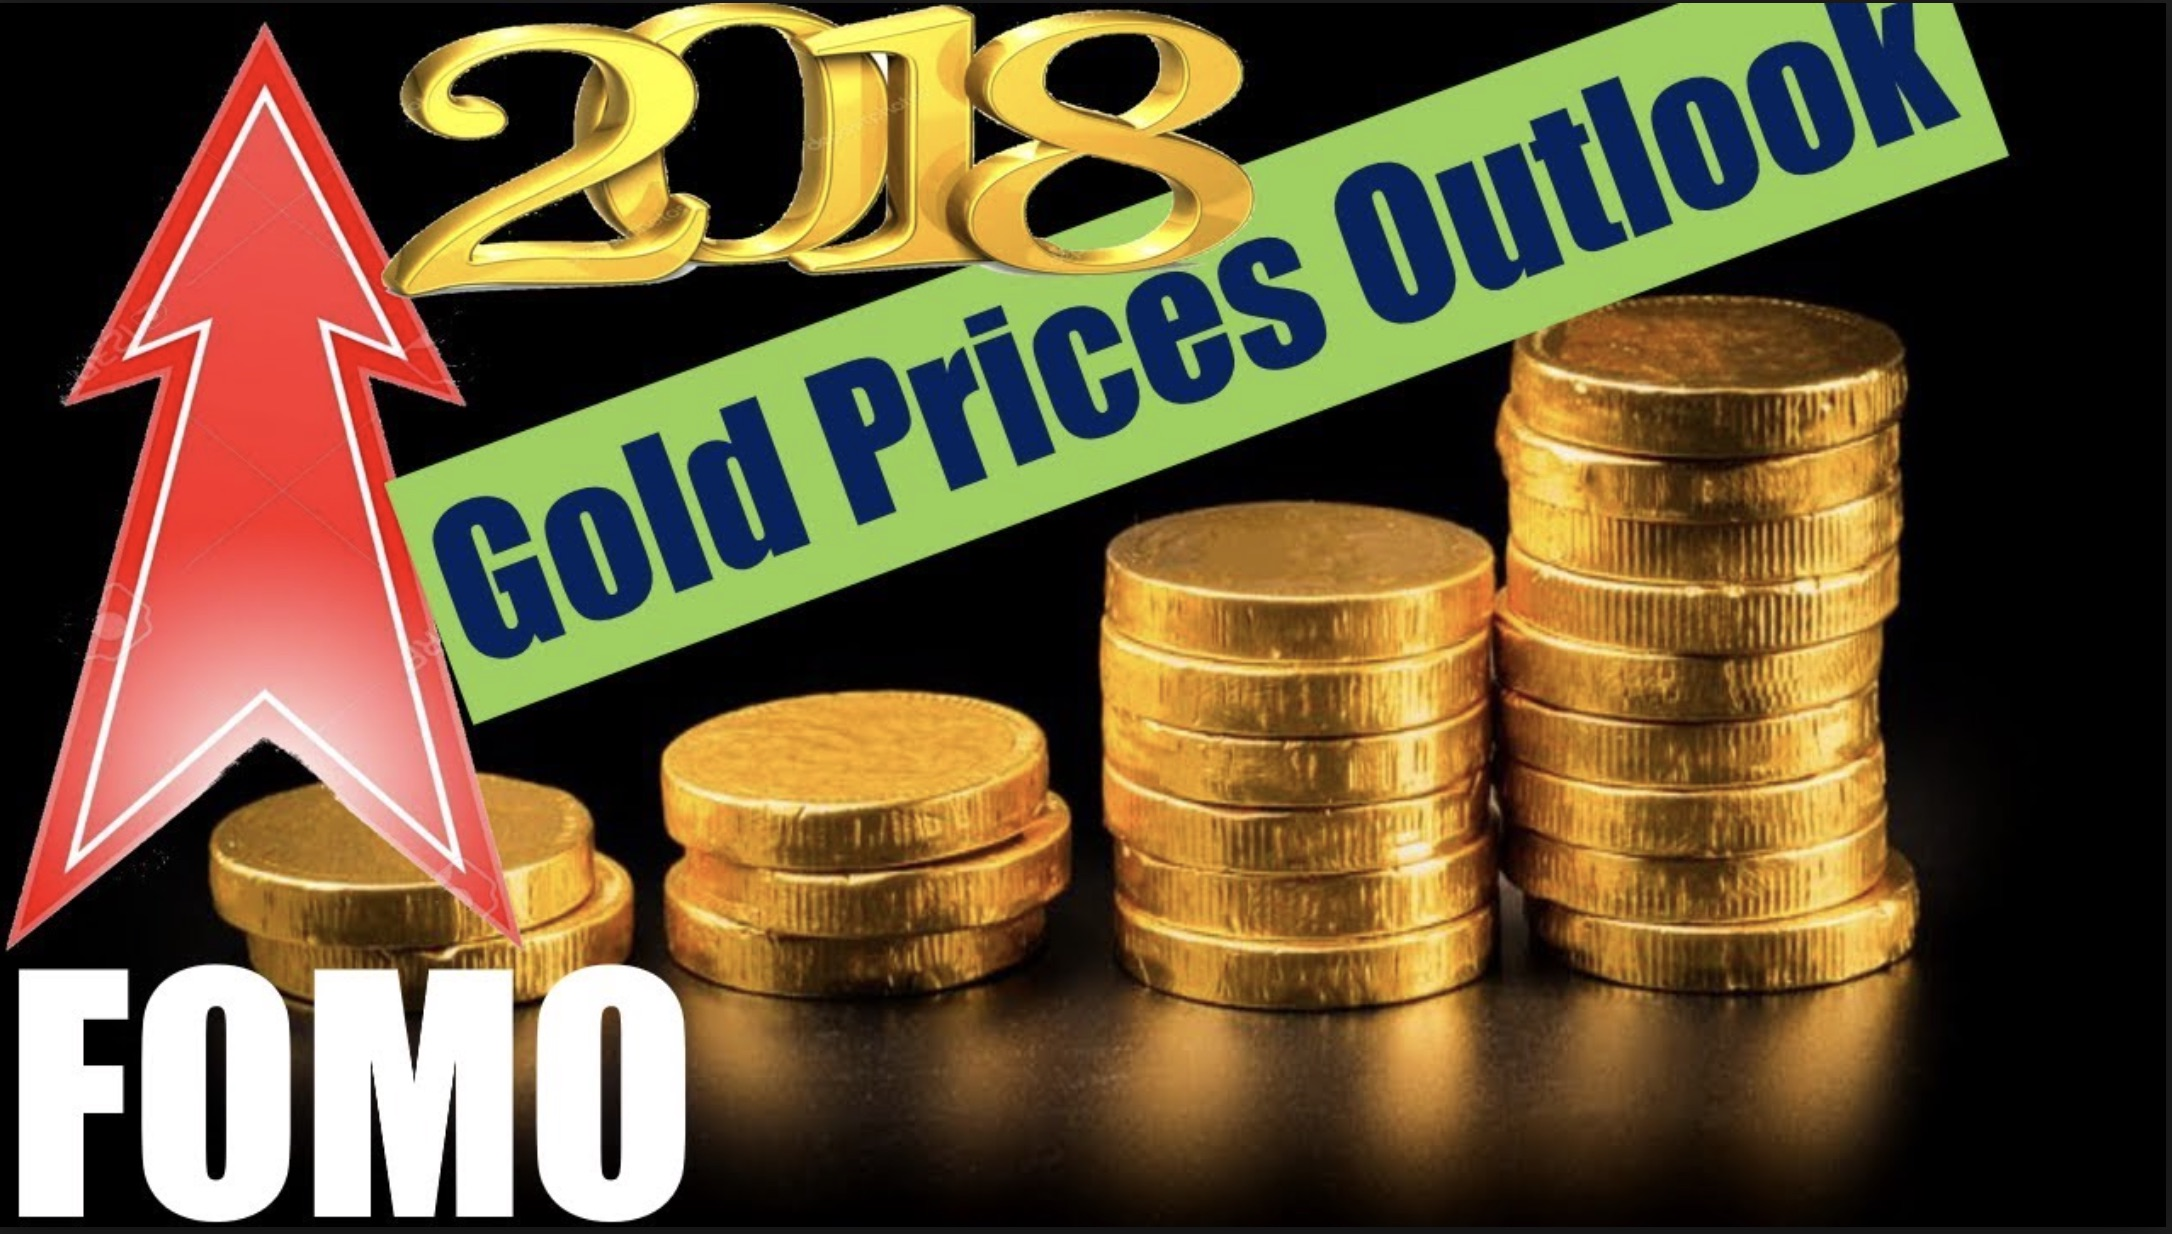 king-world-news-legend-says-fade-bullion-bank-shorting-as-price-of-gold-set-to-surge-nearly-1000